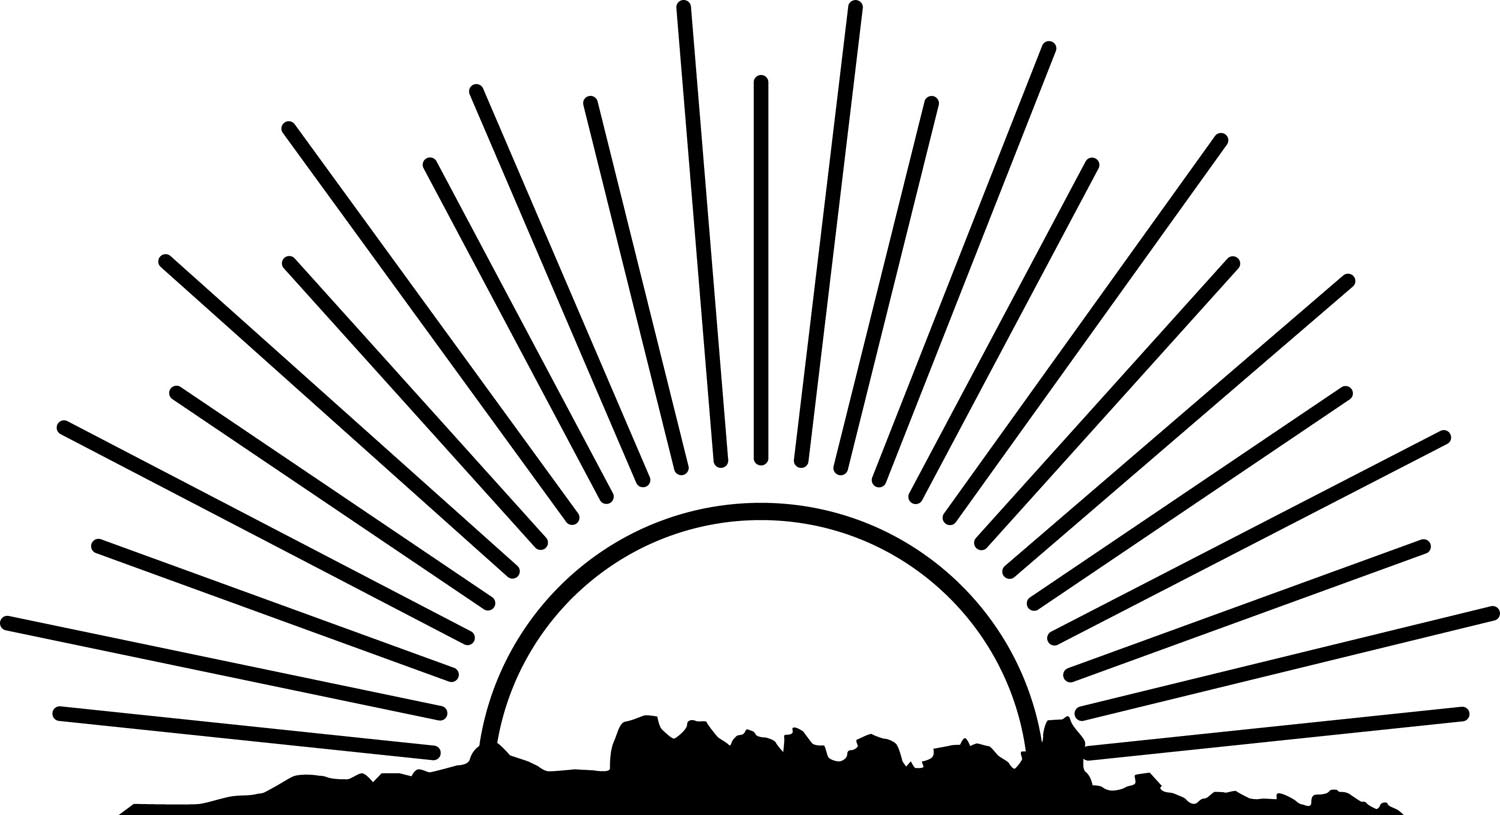 Sunrise clipart black and white 9 » Clipart Station.